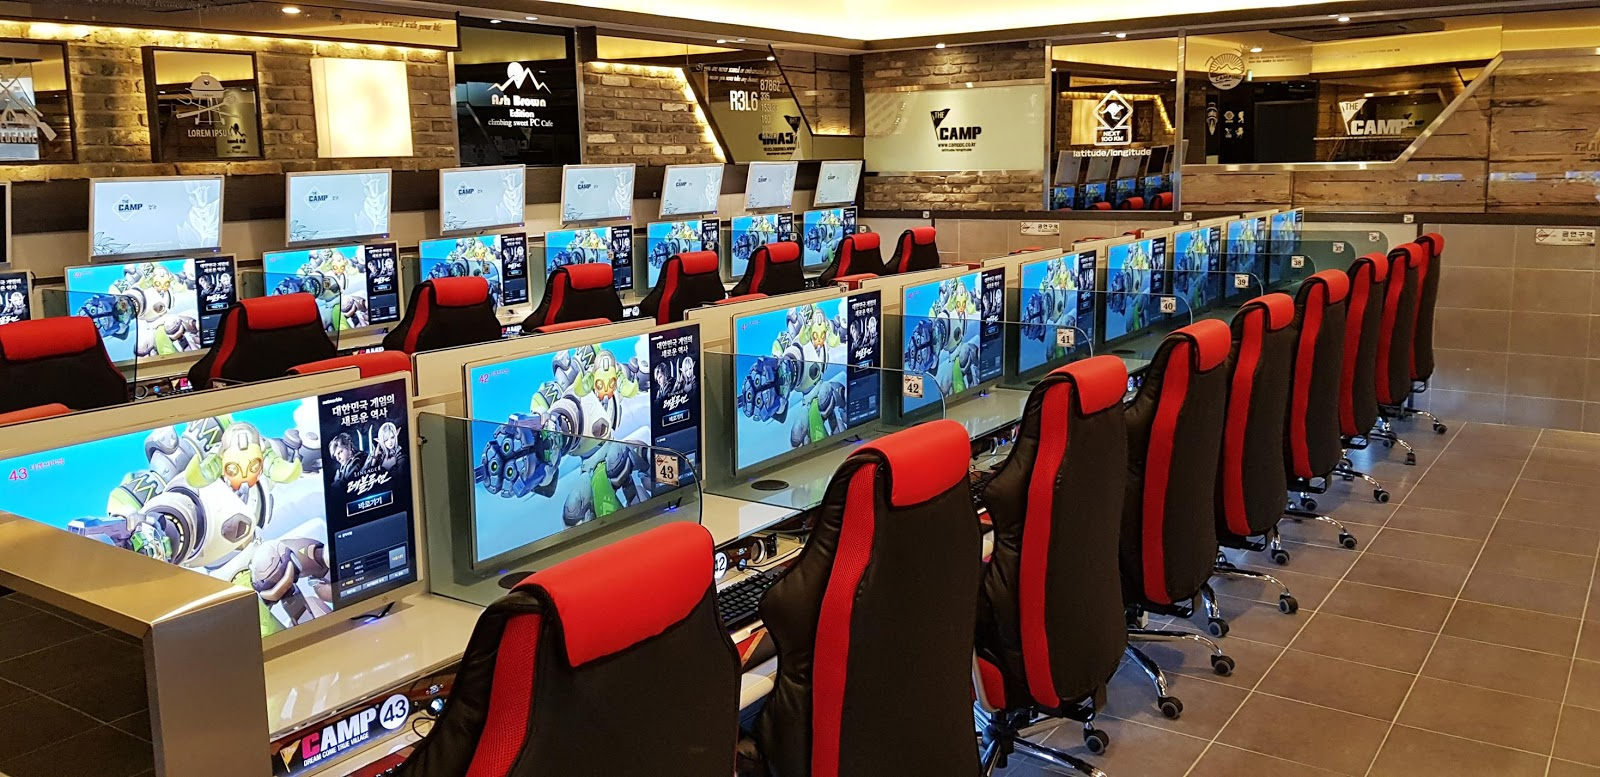 gaming chair with monitors covers for sale on ebay 6 things that surprise foreigners about korean internet cafes